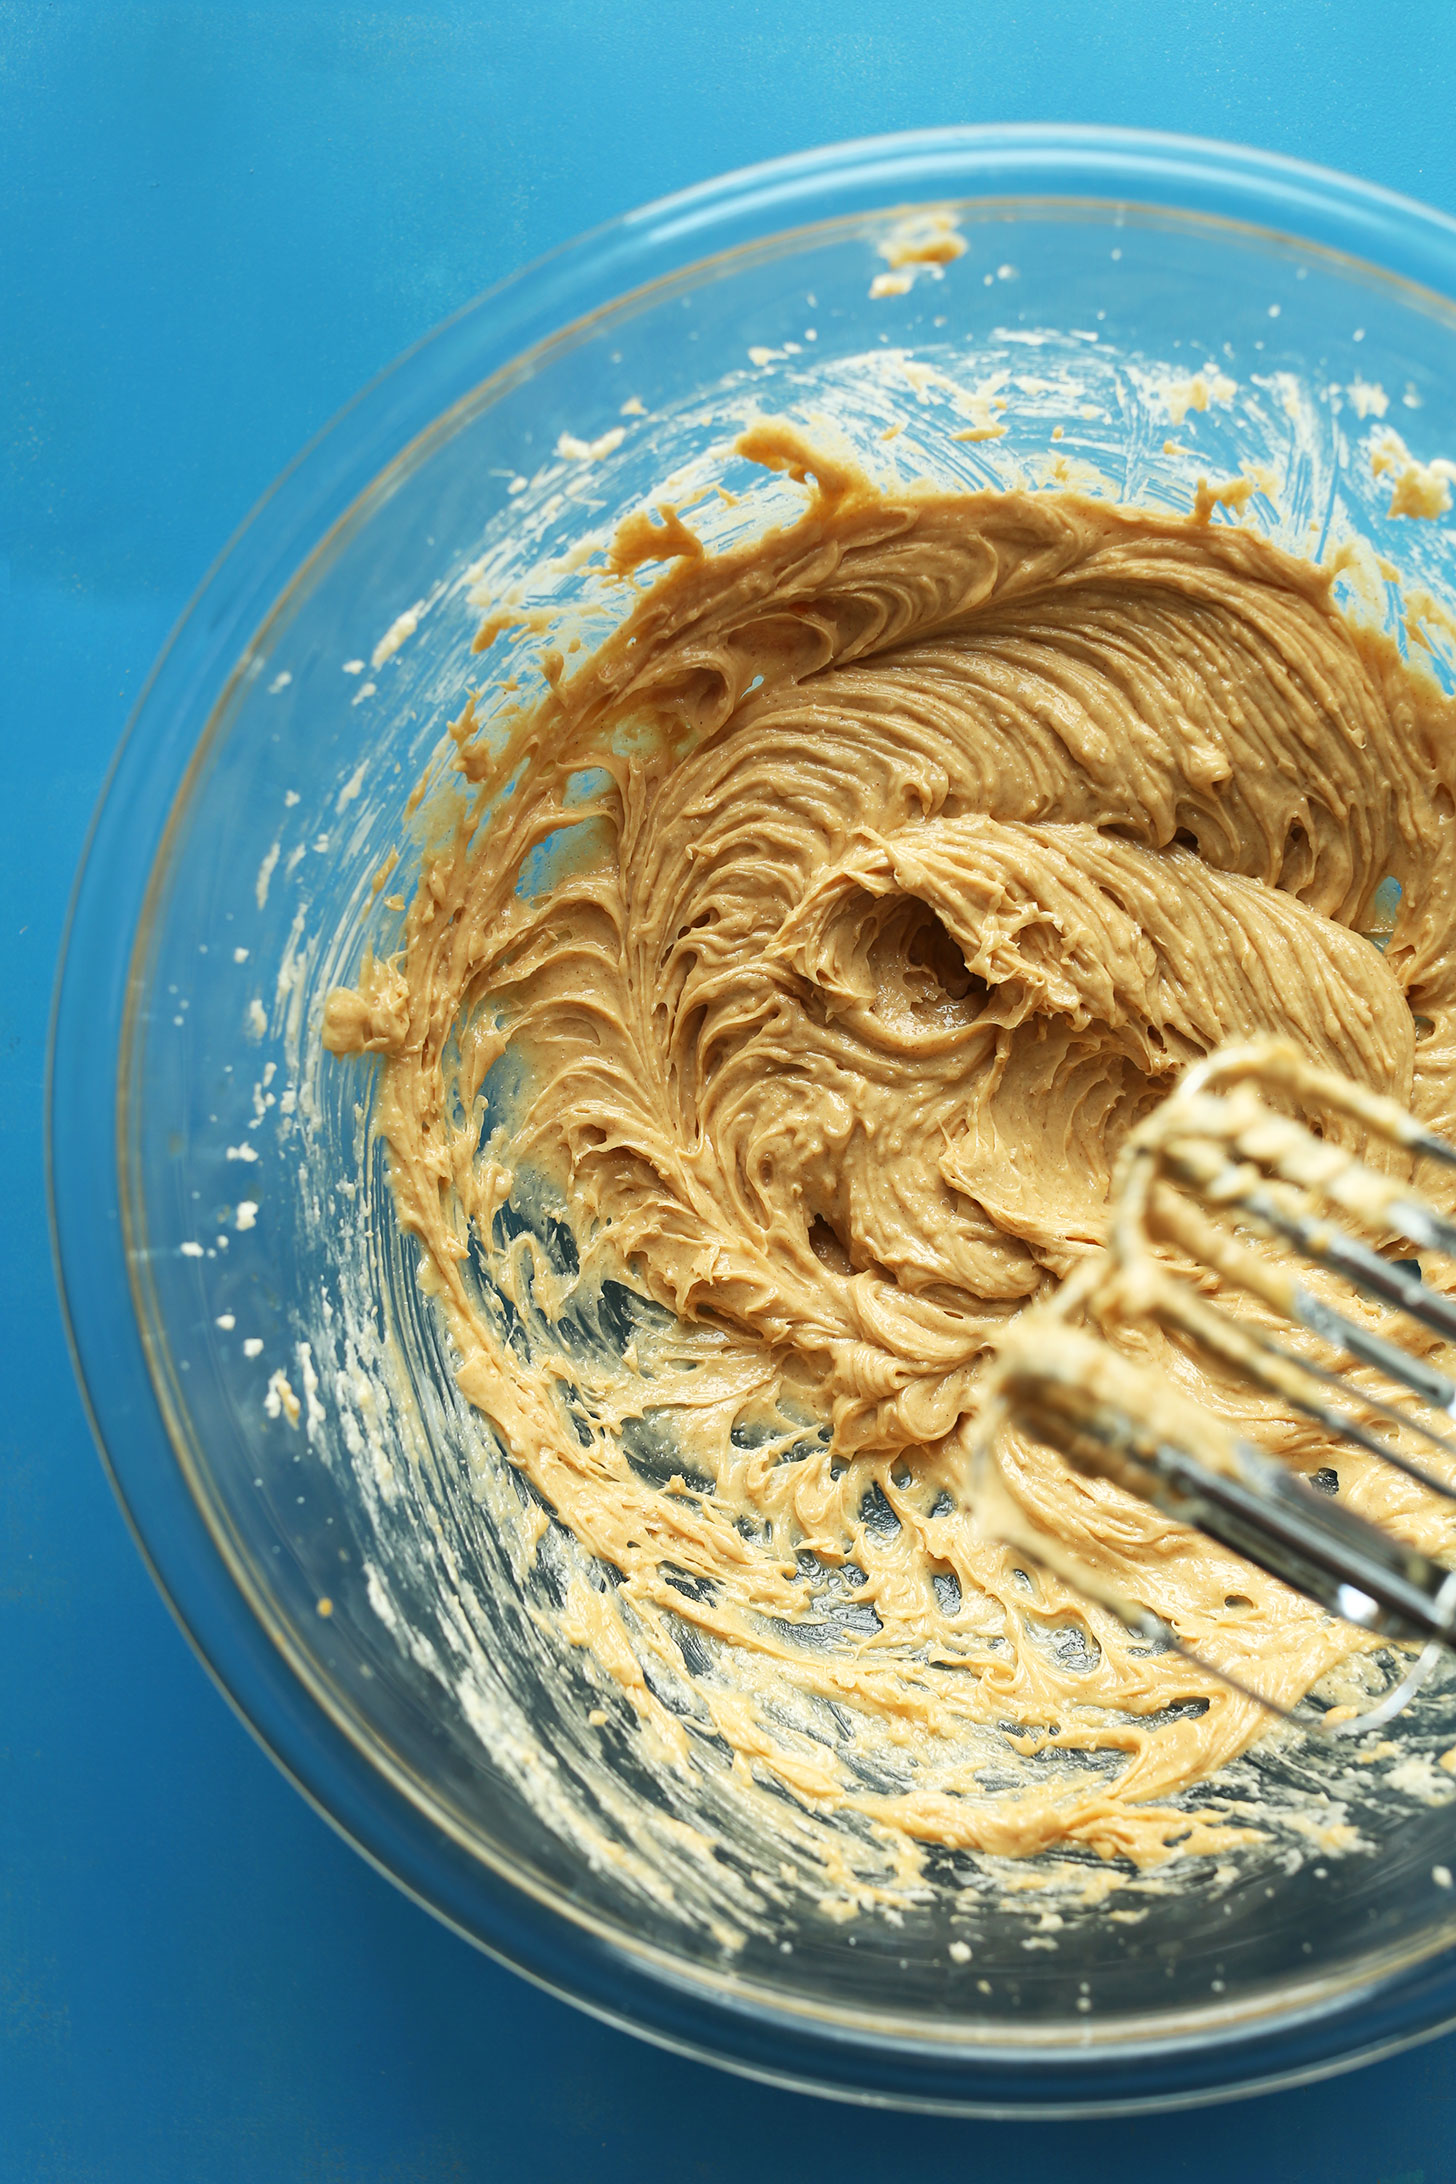 Whipping peanut butter for our amazing Peanut Butter Cup Cookies